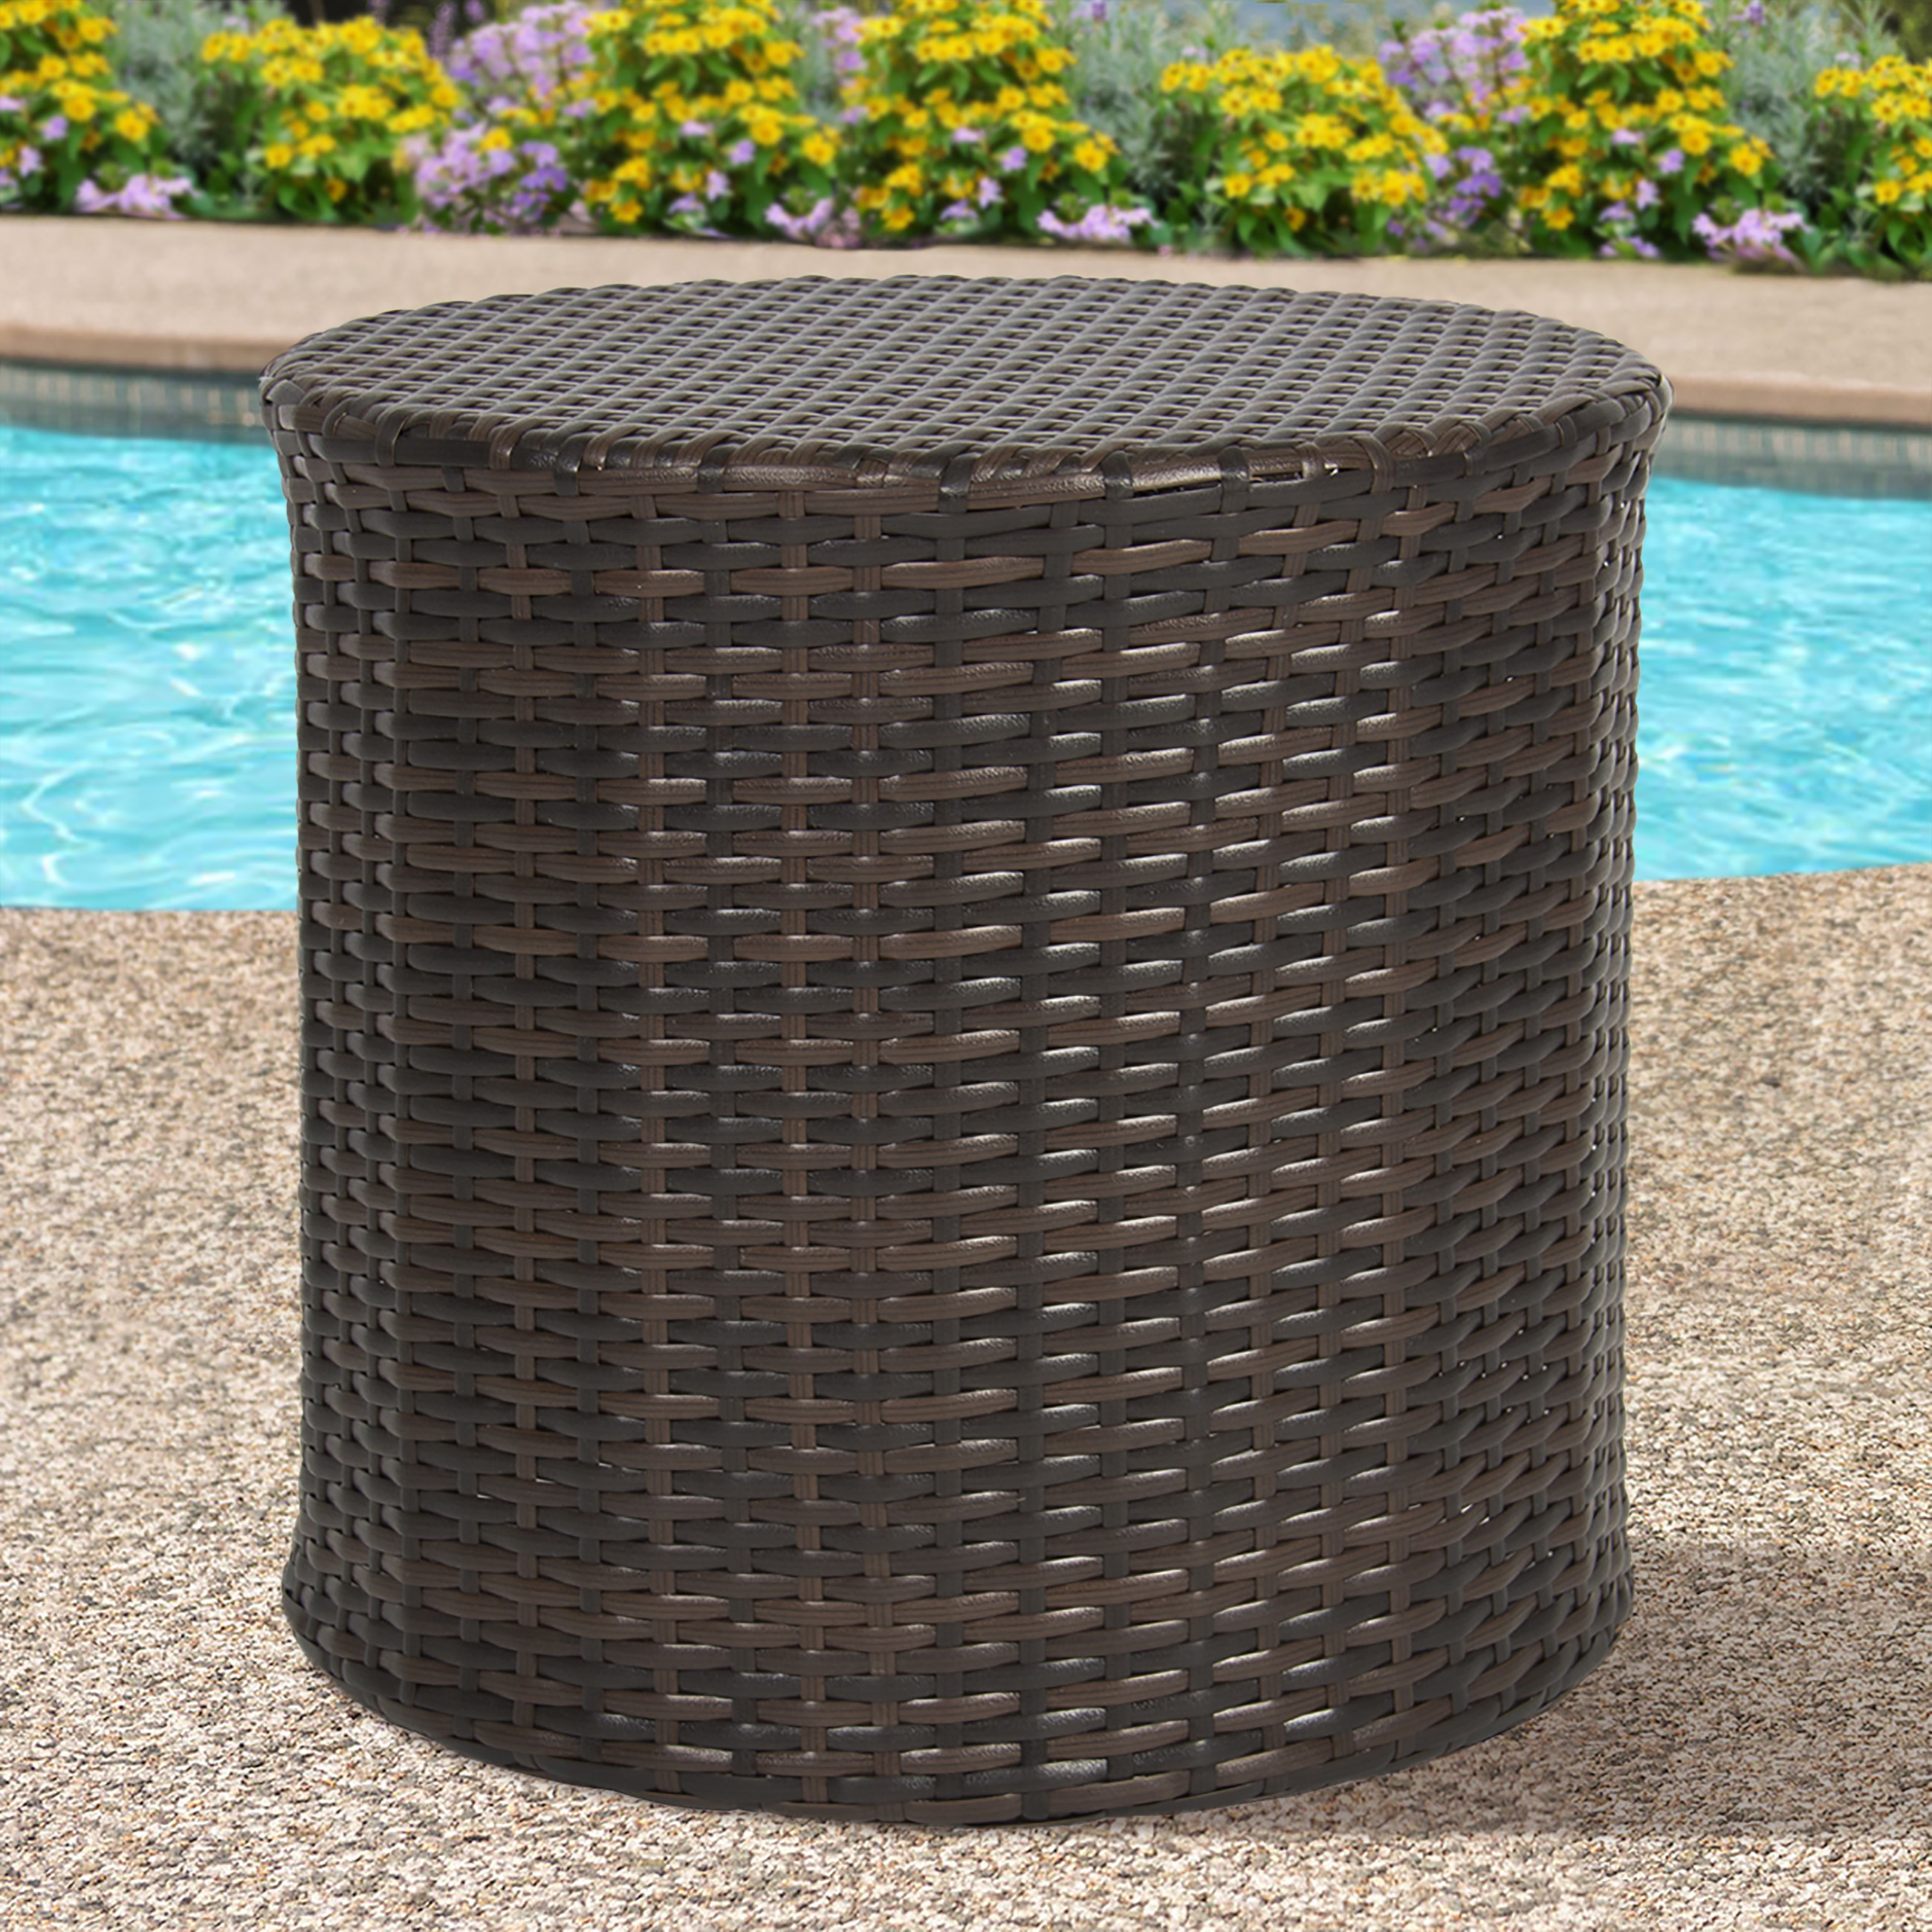 best choice products outdoor wicker rattan barrel side table patio furniture garden backyard pool quilt runner patterns dining chairs with arms hairpin legs rose gold steel coffee